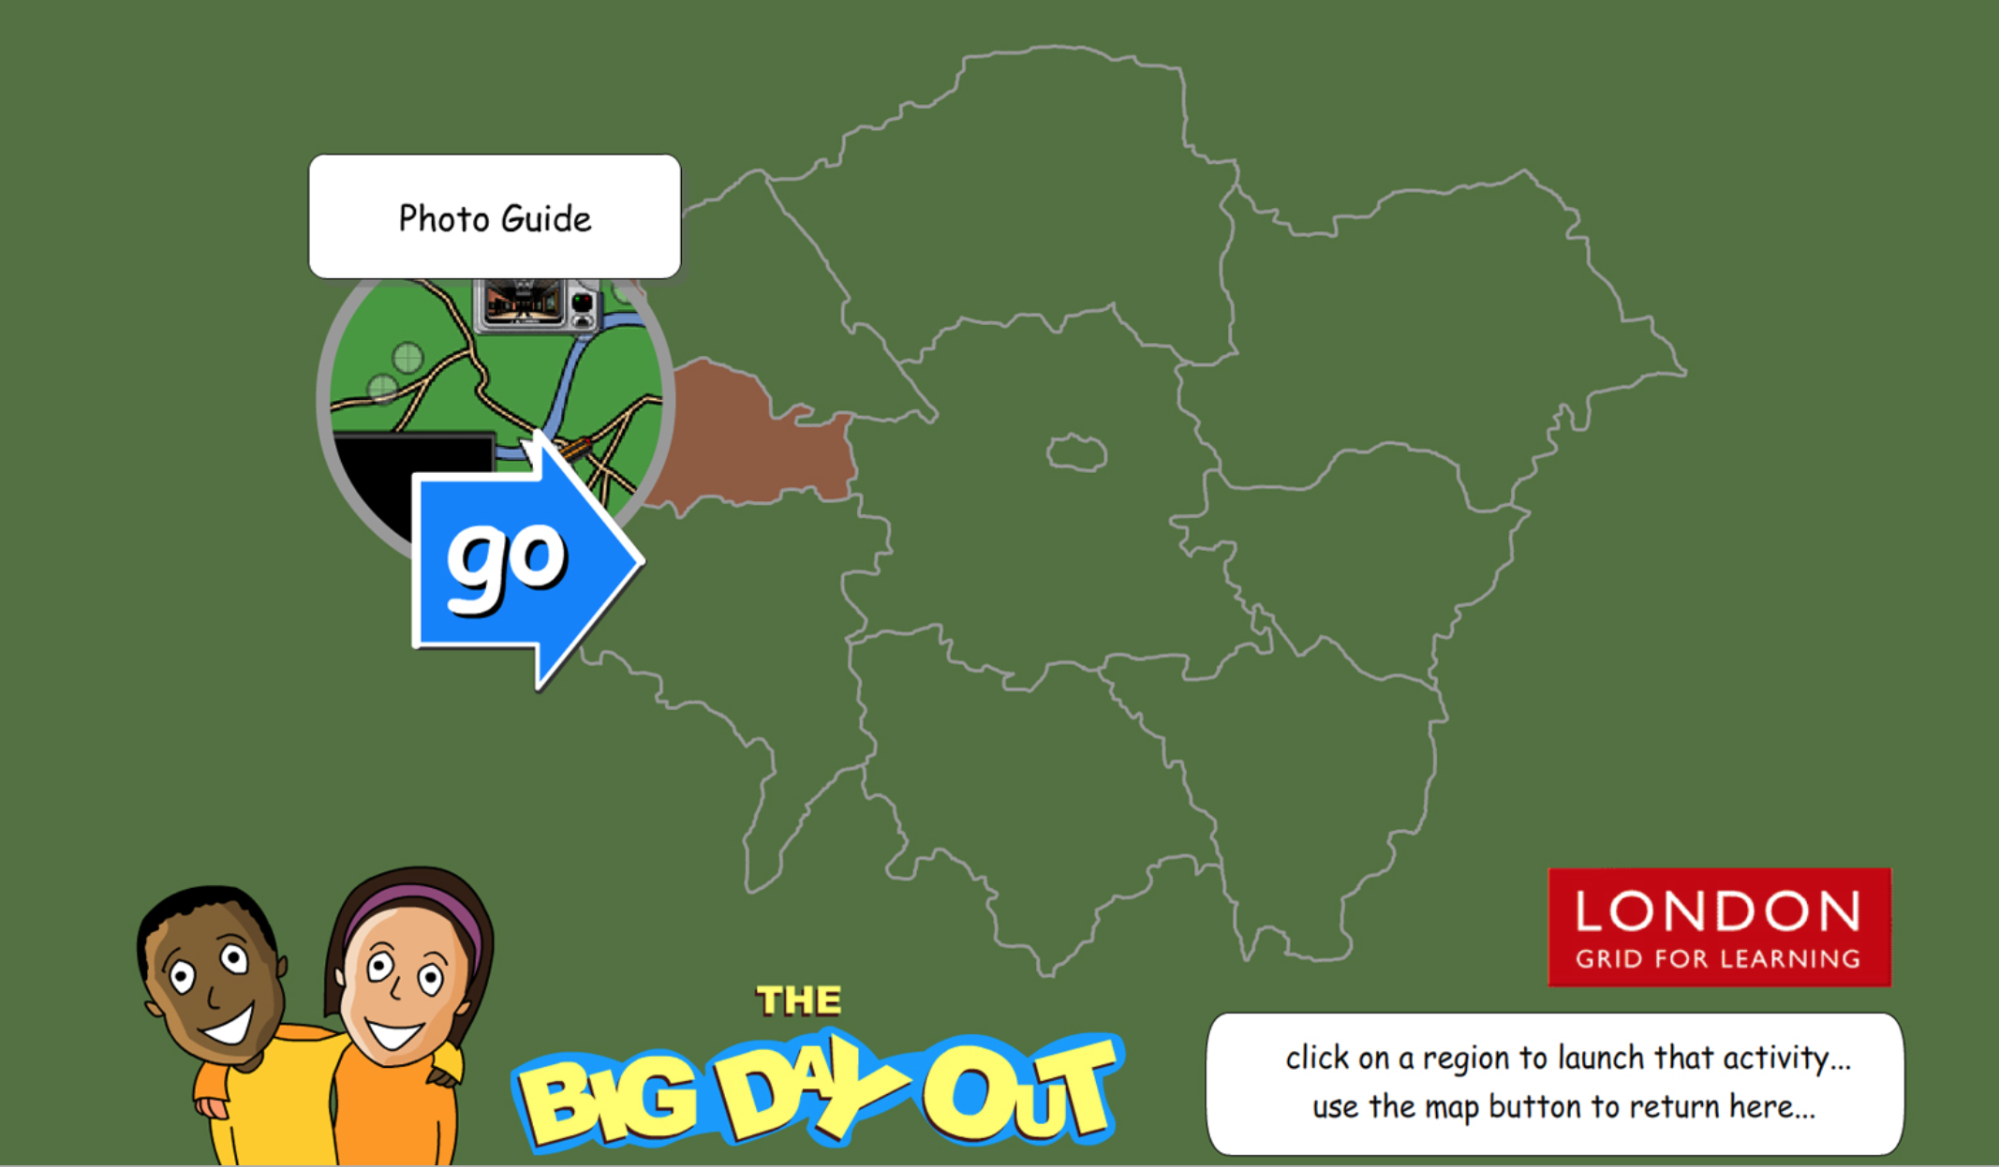 The Big Day Out Screenshot